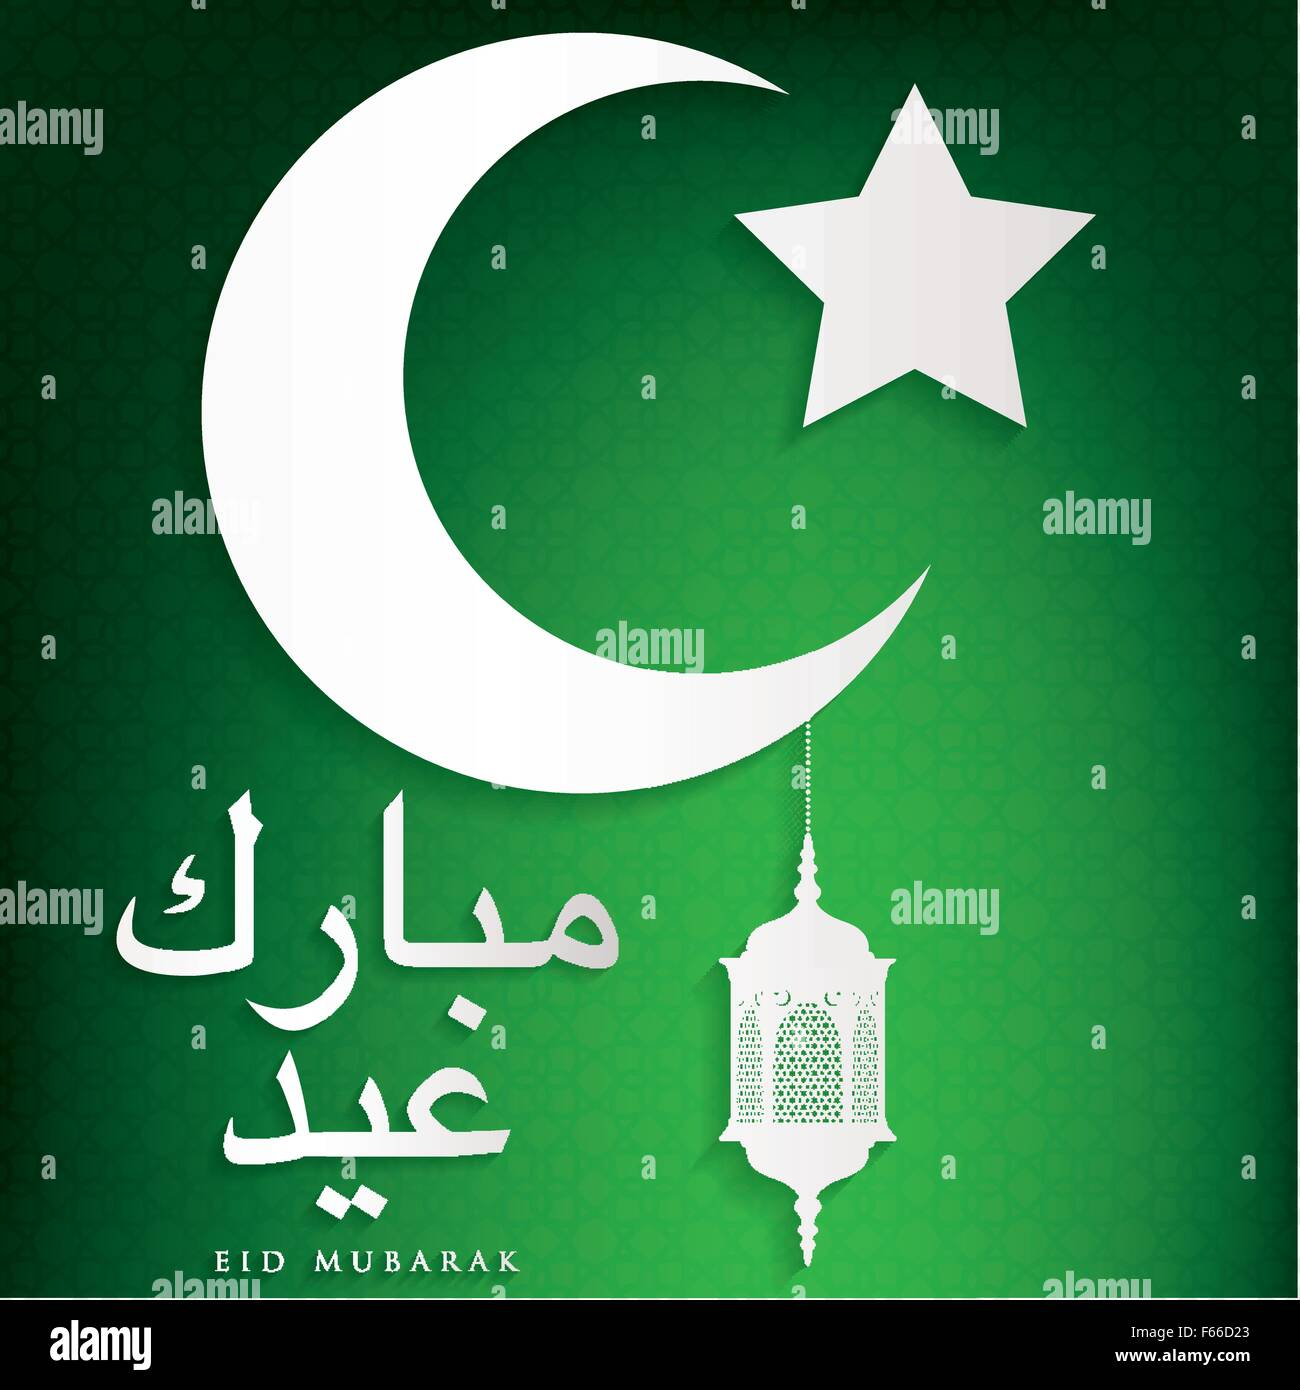 Eid mubarak blessed eid moon and lantern card in vector format eid mubarak blessed eid moon and lantern card in vector format kristyandbryce Image collections